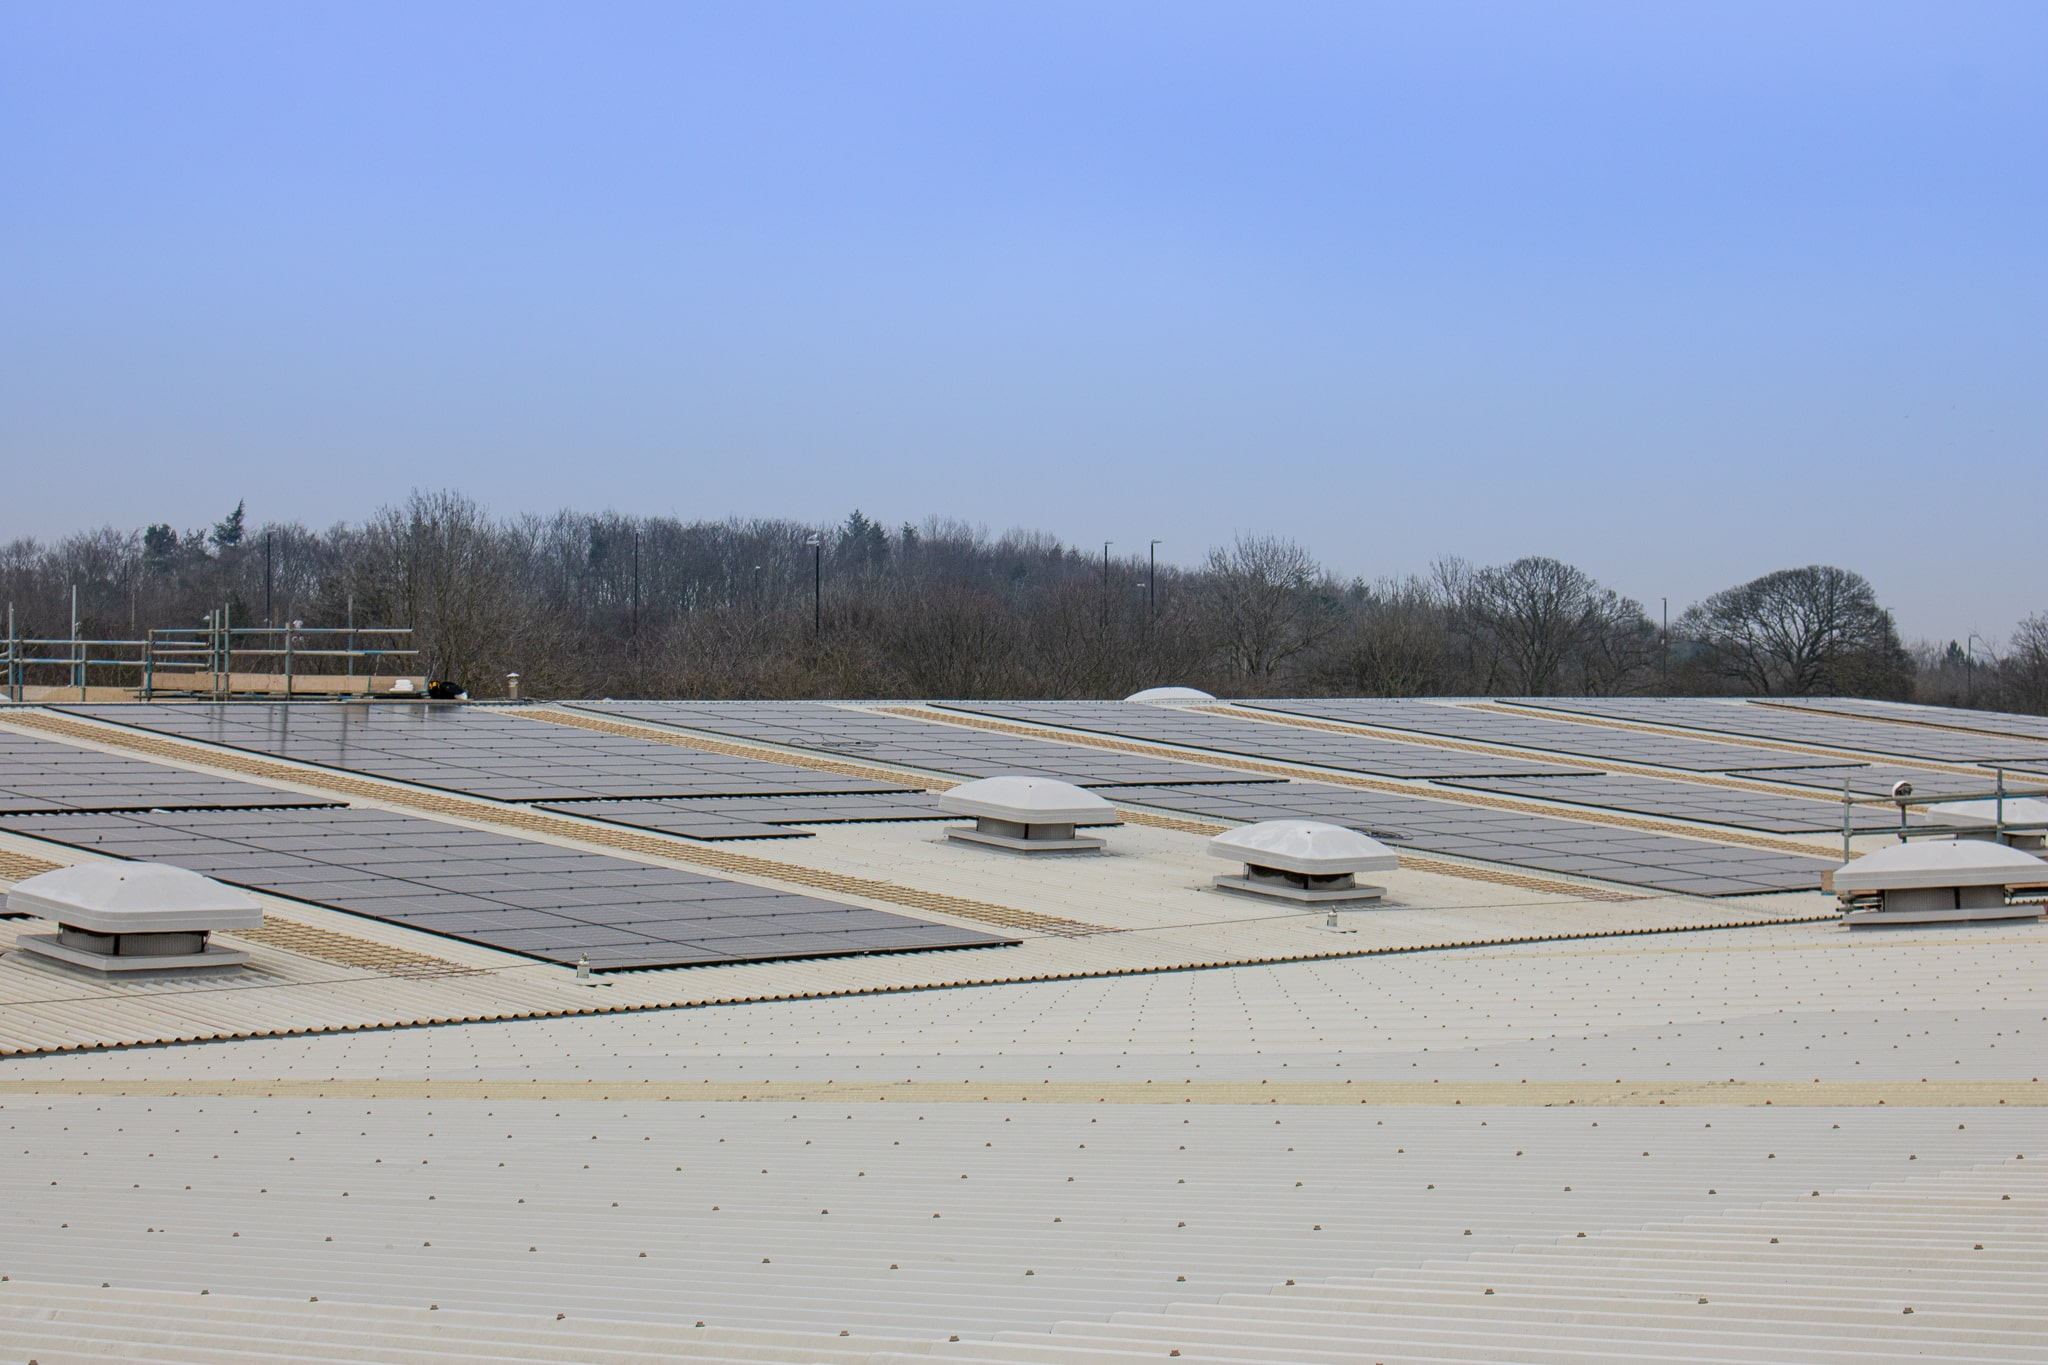 Walker Filtration Solar Panel Installation - working towards a sustainable future